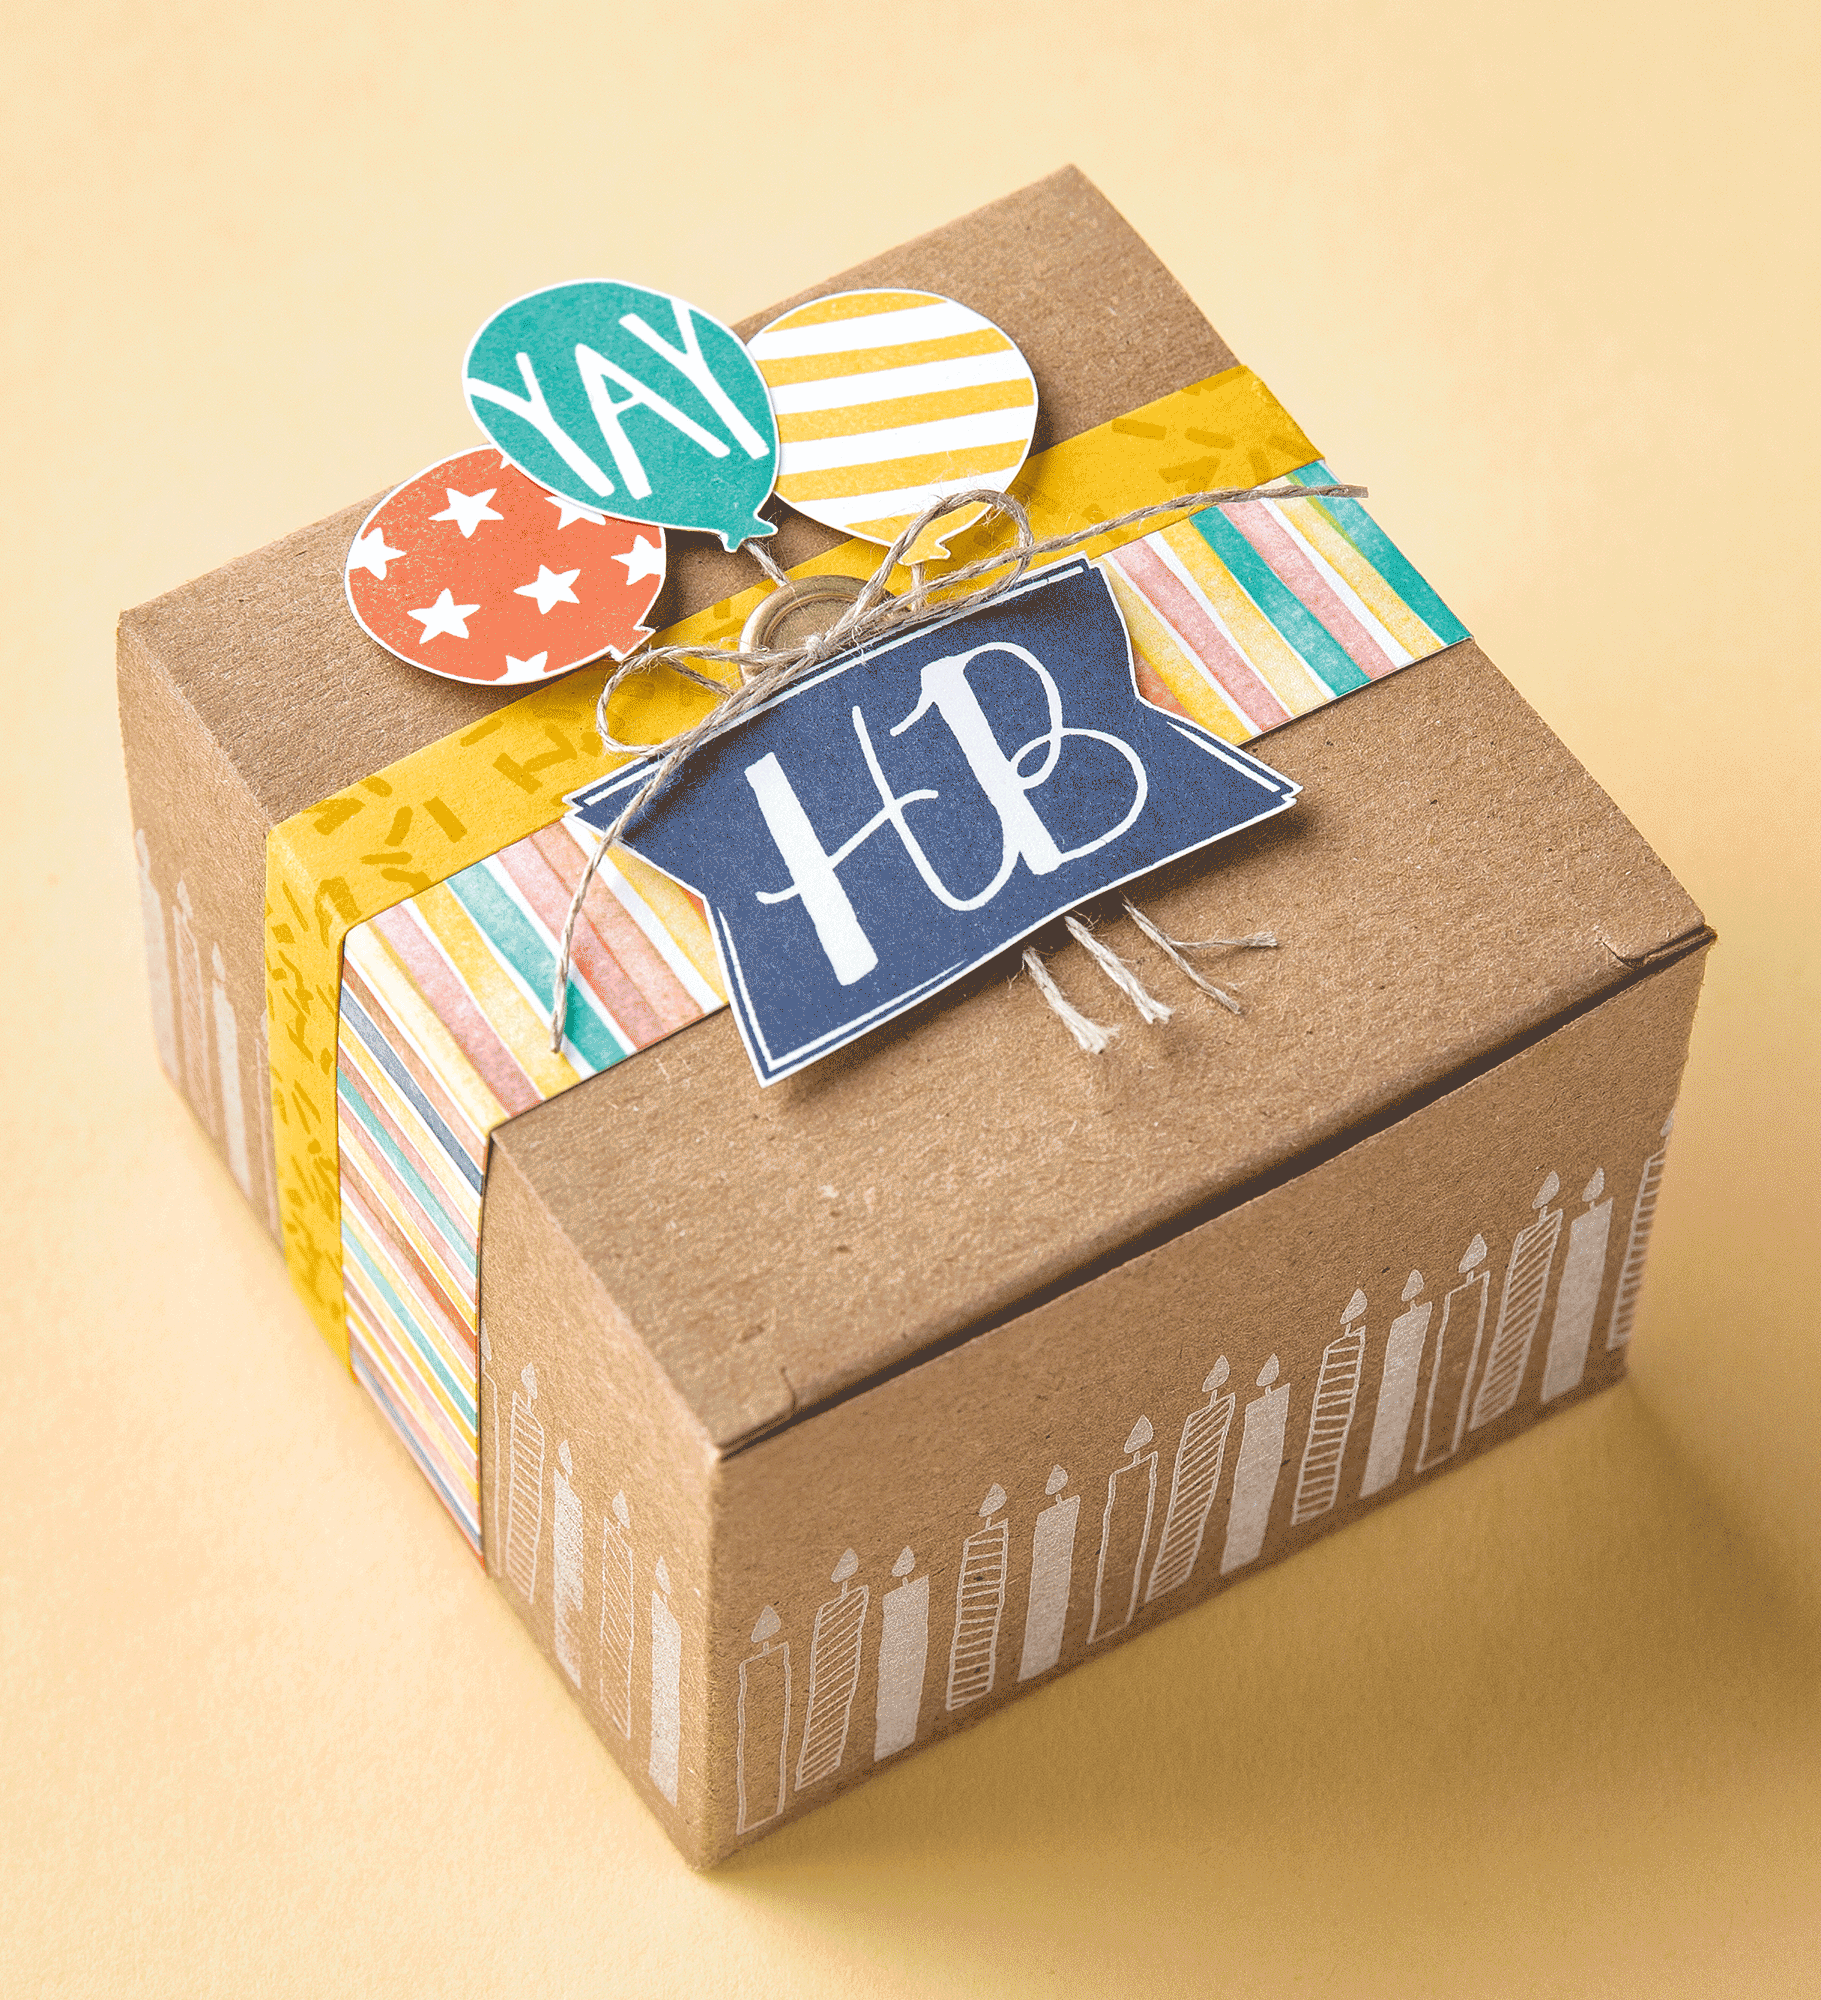 The Balloon Bash Stamp Set Is Perfect For Decorating Gift Boxes To Make A Birthday Present Even More Special